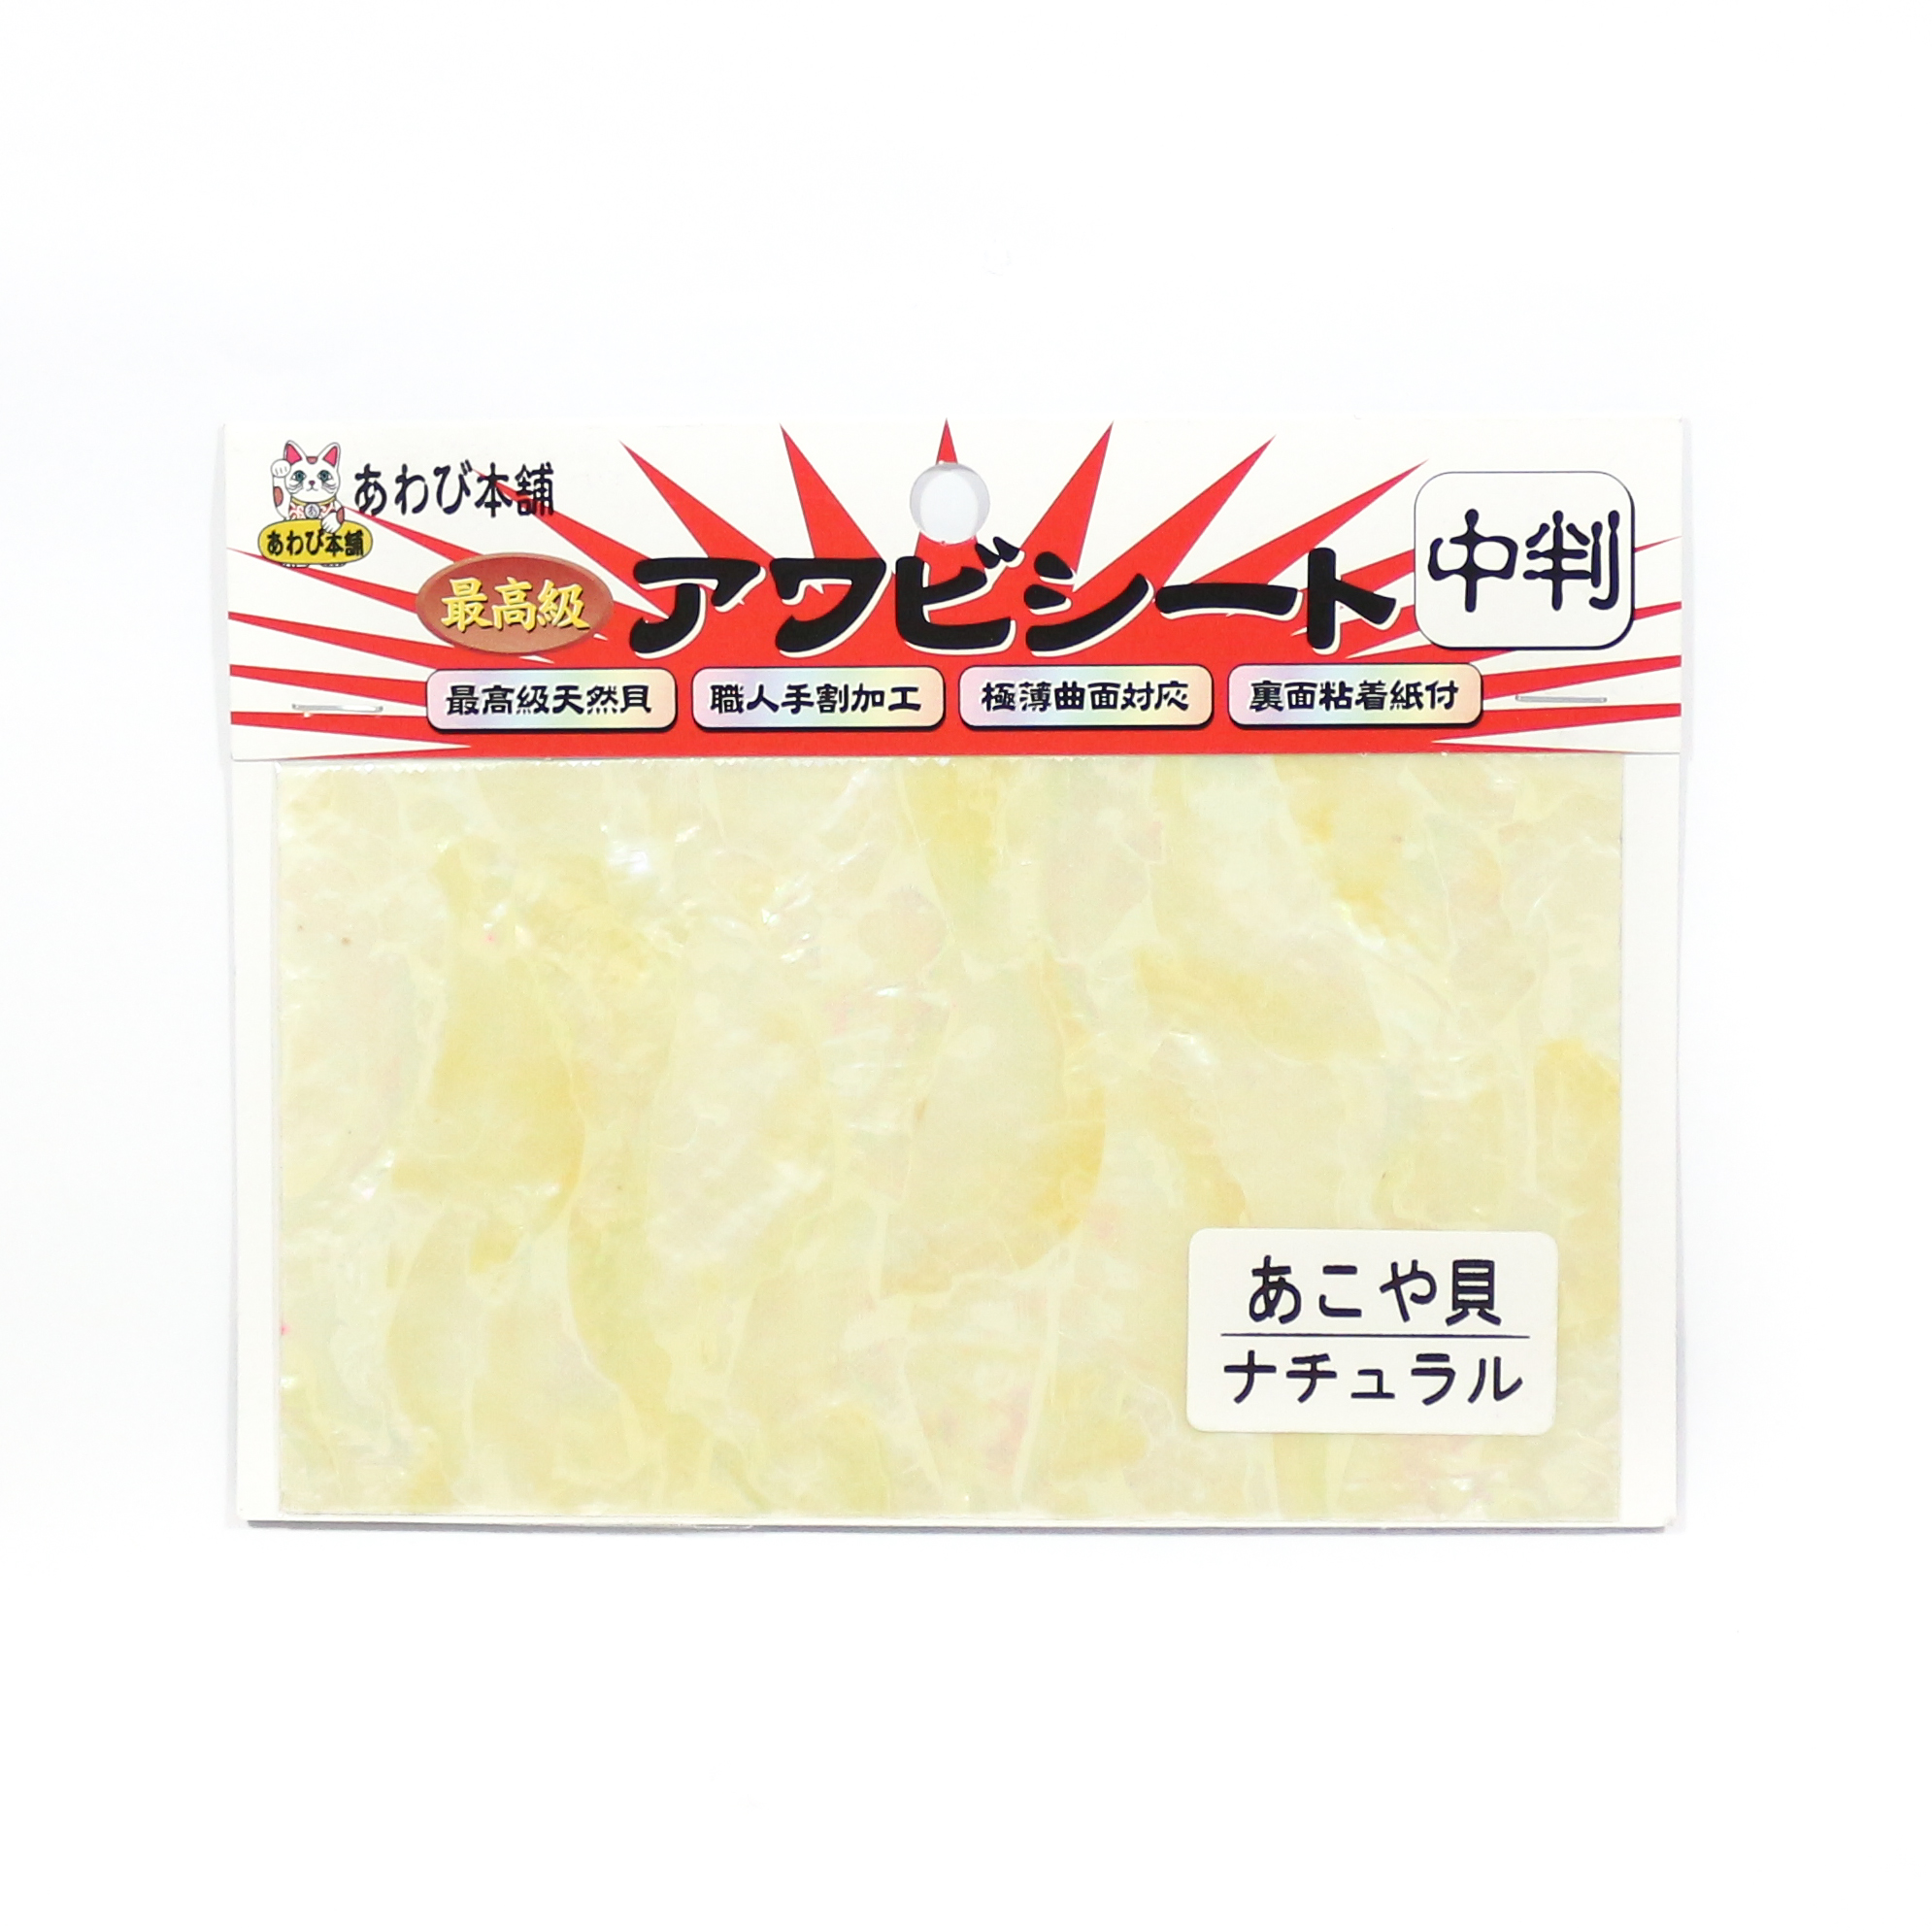 Awabi Honpo Awabi Sheet Size M 80 x 138 mm Akoya Natural (0446)